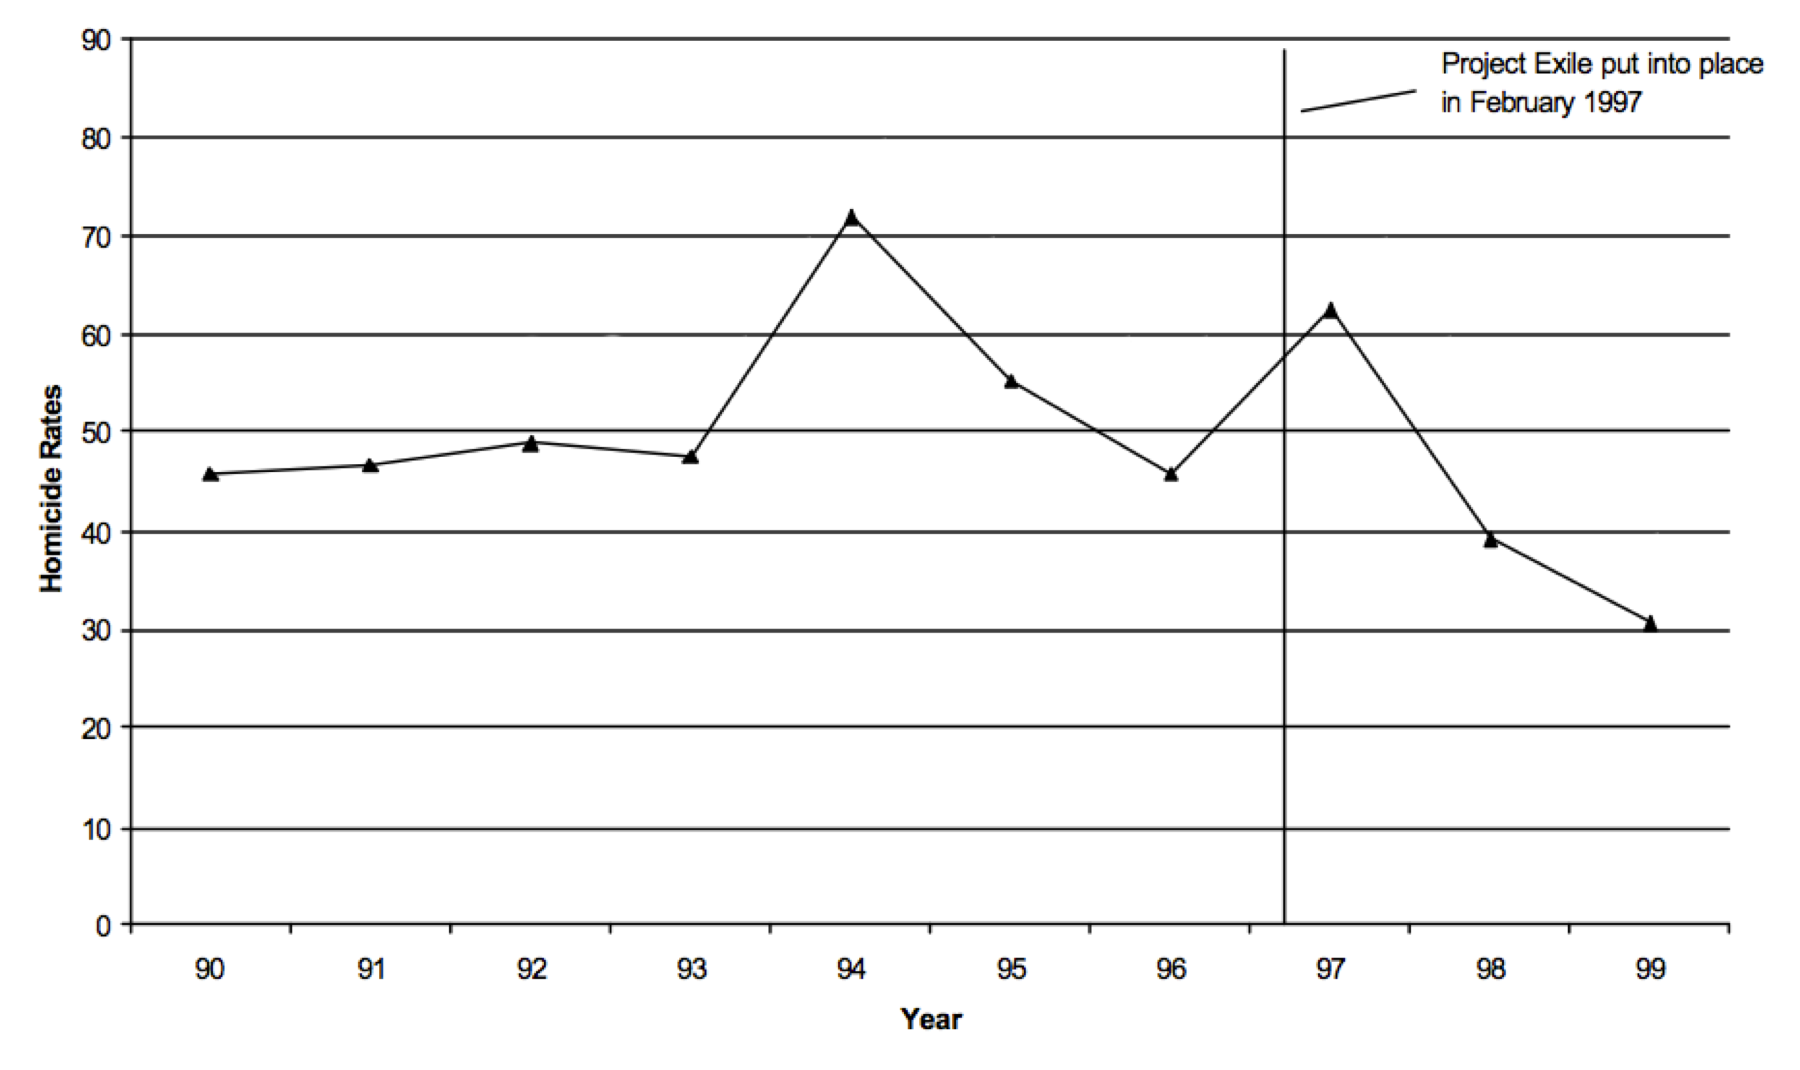 Line graph of murders before and after Project Exile.